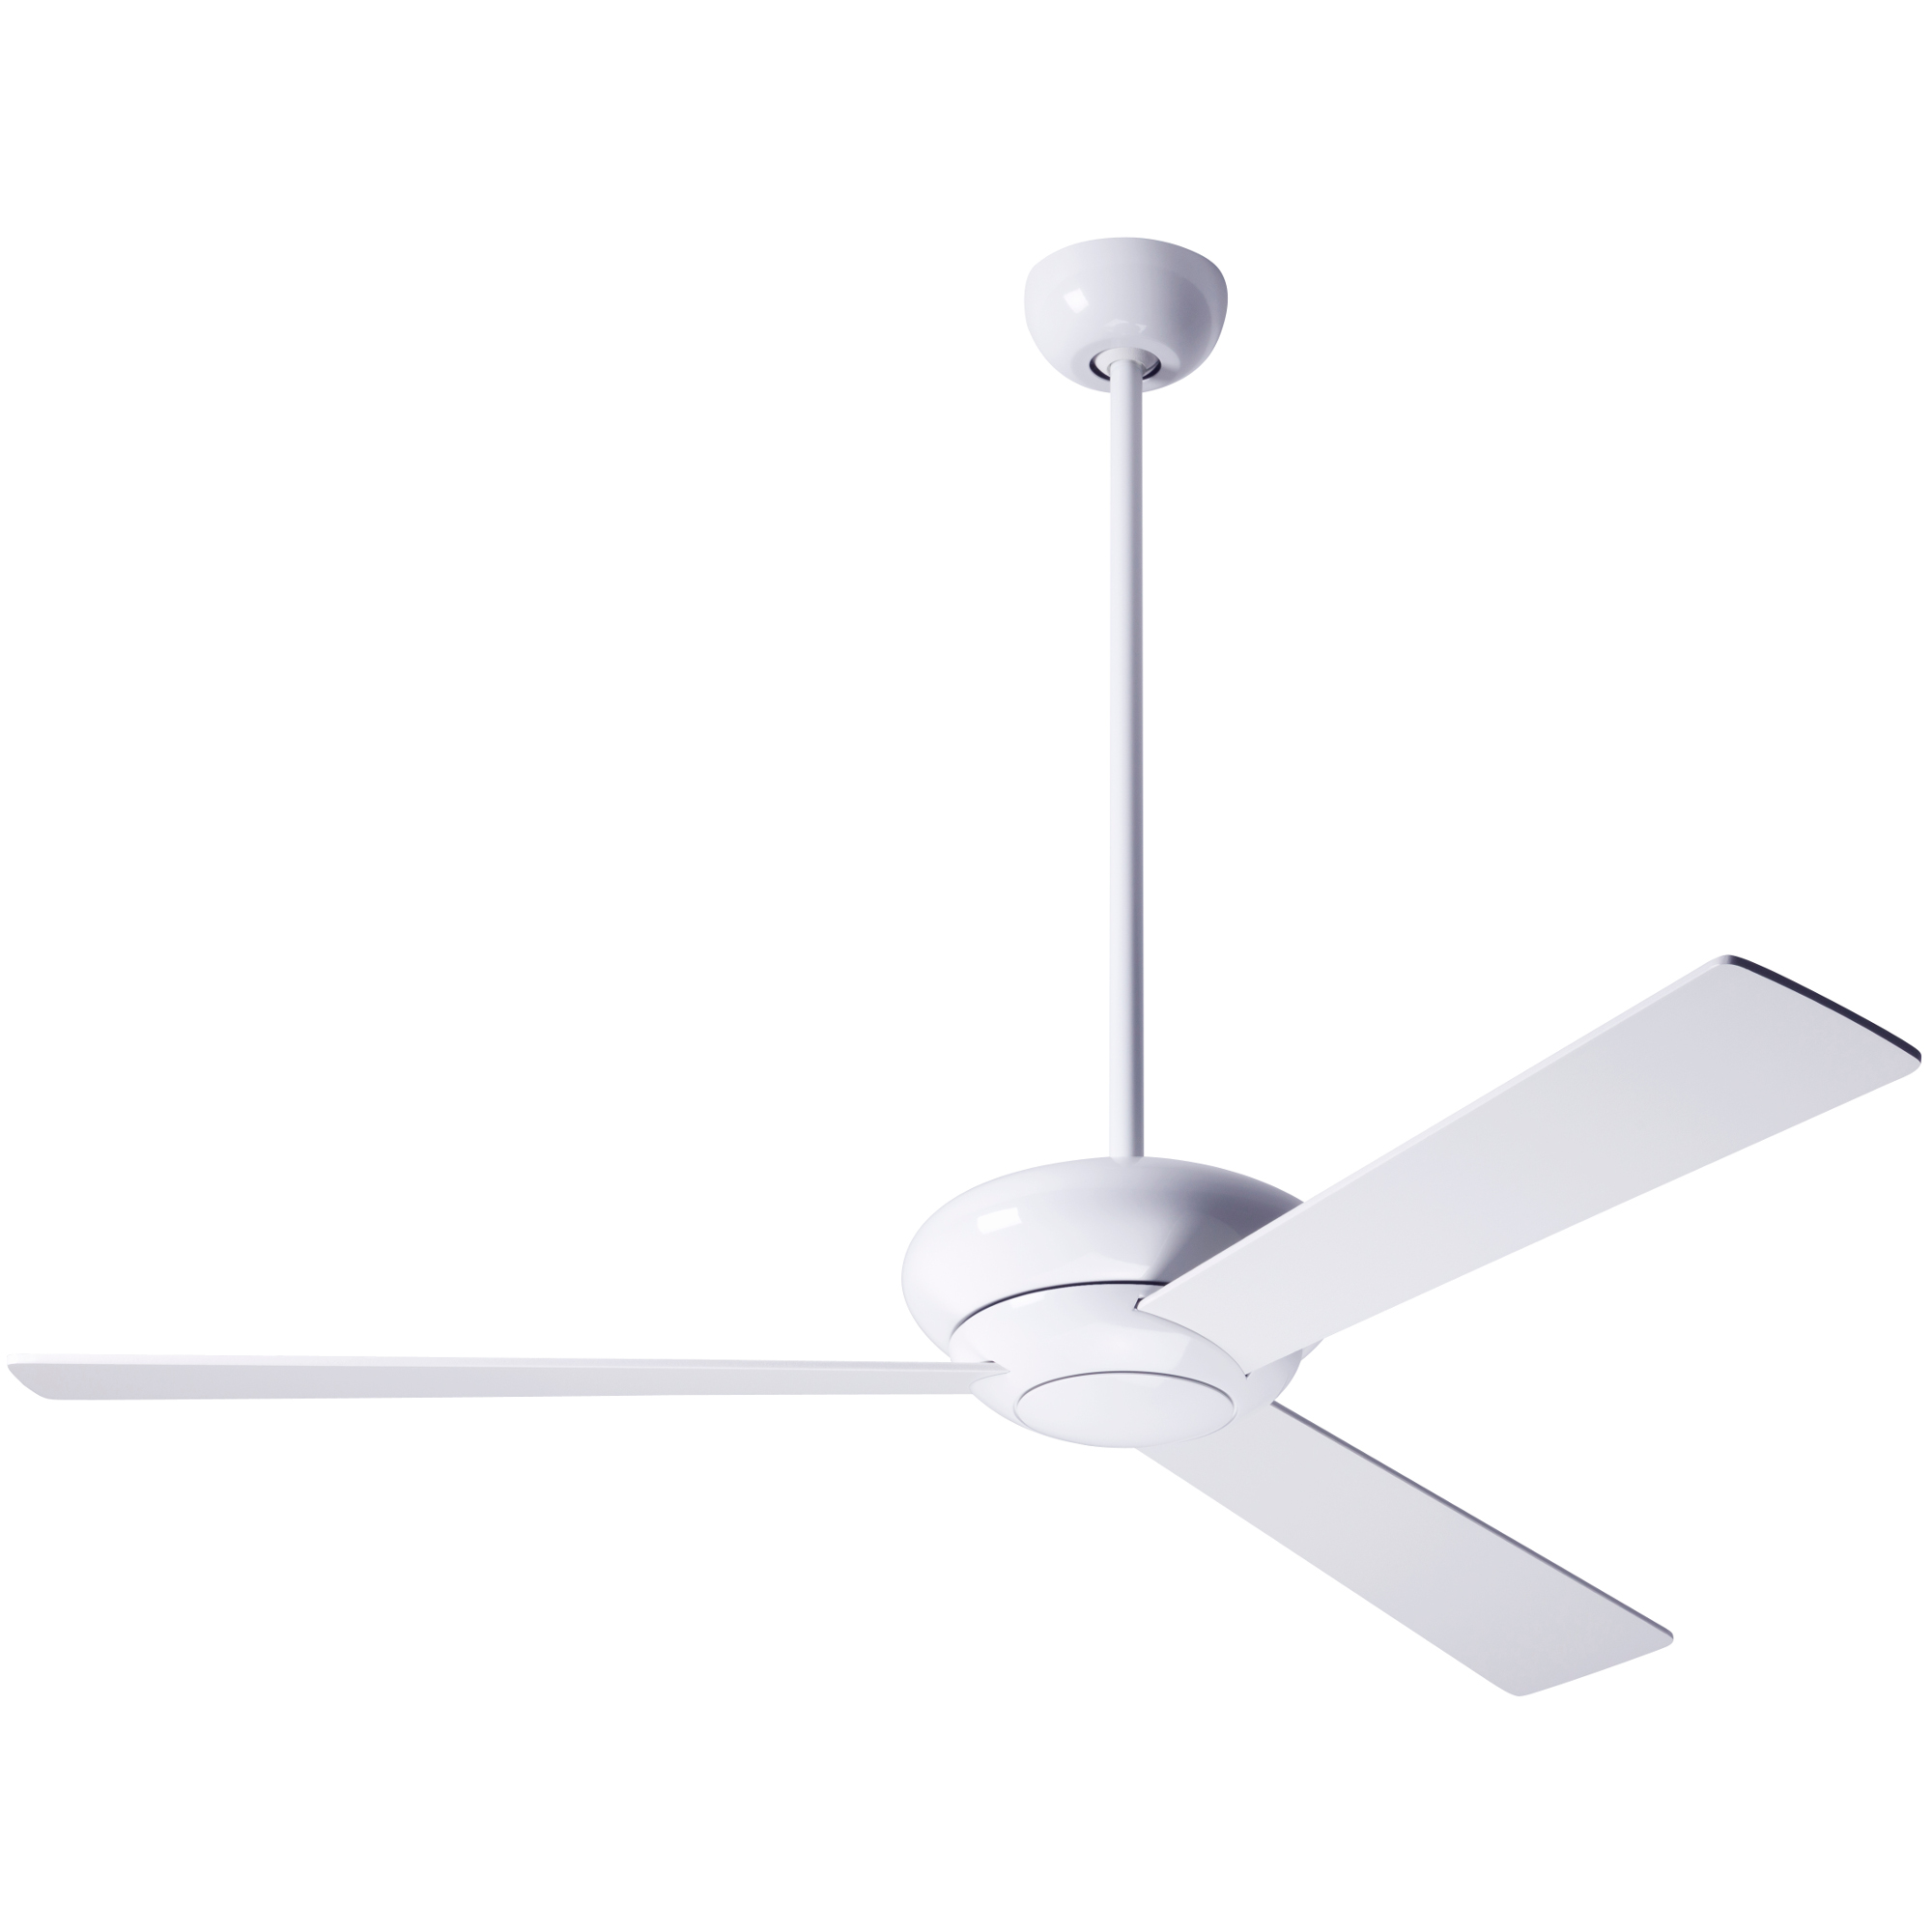 Altus ceiling fan by modern fan co alt gw 52 wh nl 003 aloadofball Image collections